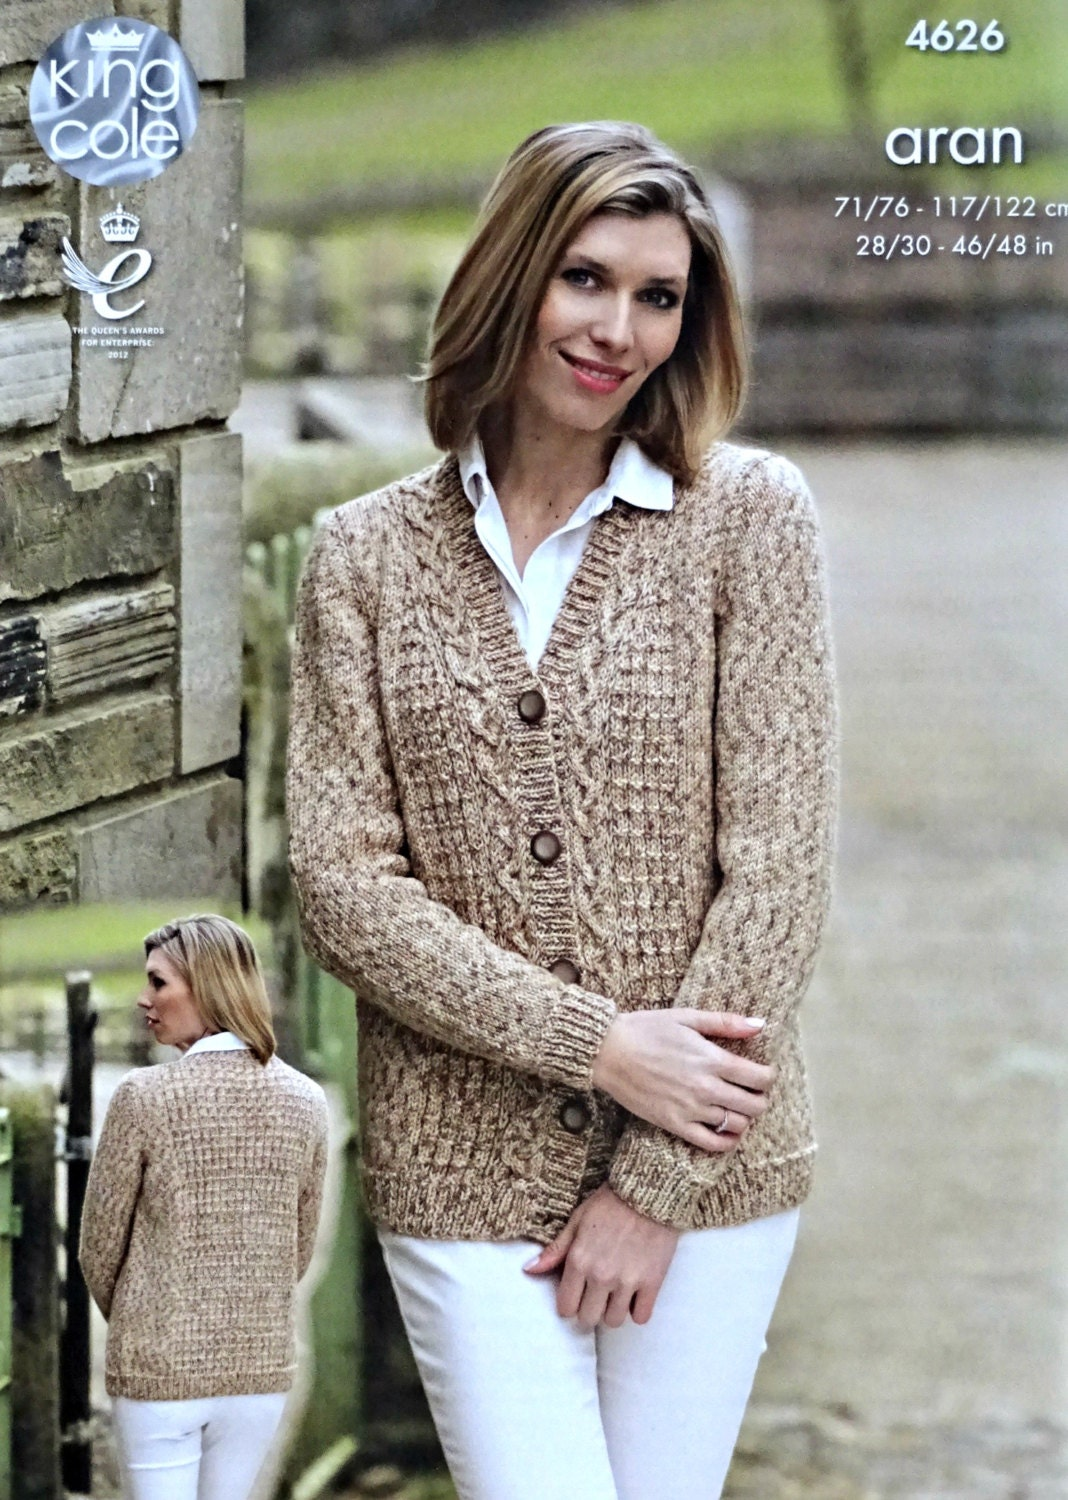 Womens knitting pattern k4626 ladiesmens long sleeve v neck cable womens knitting pattern k4626 ladiesmens long sleeve v neck cable cardigan knitting pattern aran worsted king cole bankloansurffo Image collections